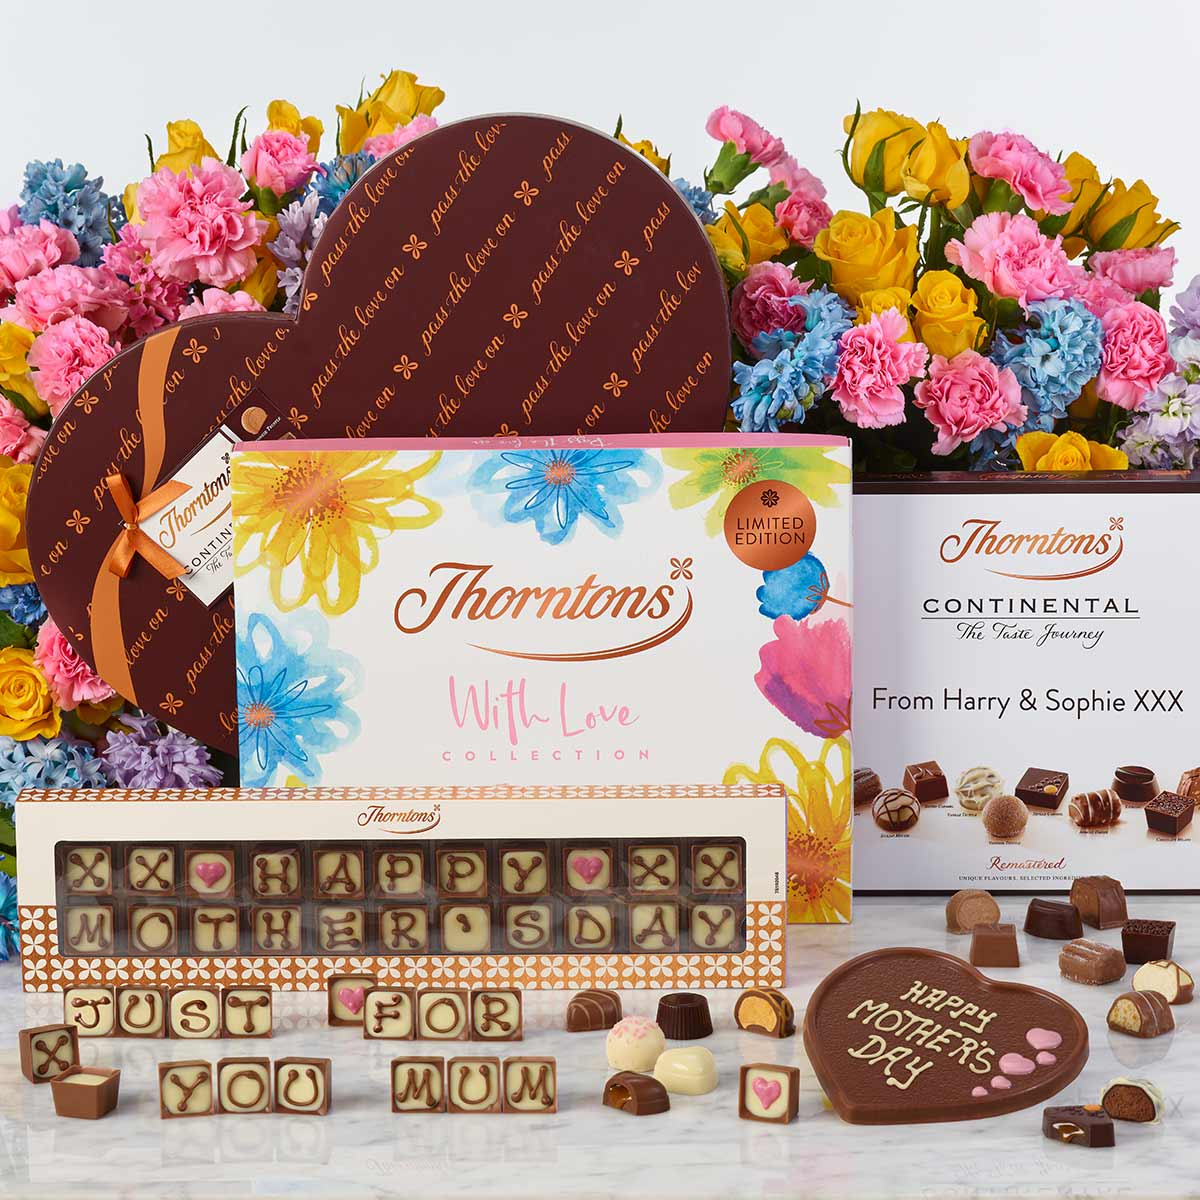 Assorted boxes of chocolates and colourful flowers behind them.